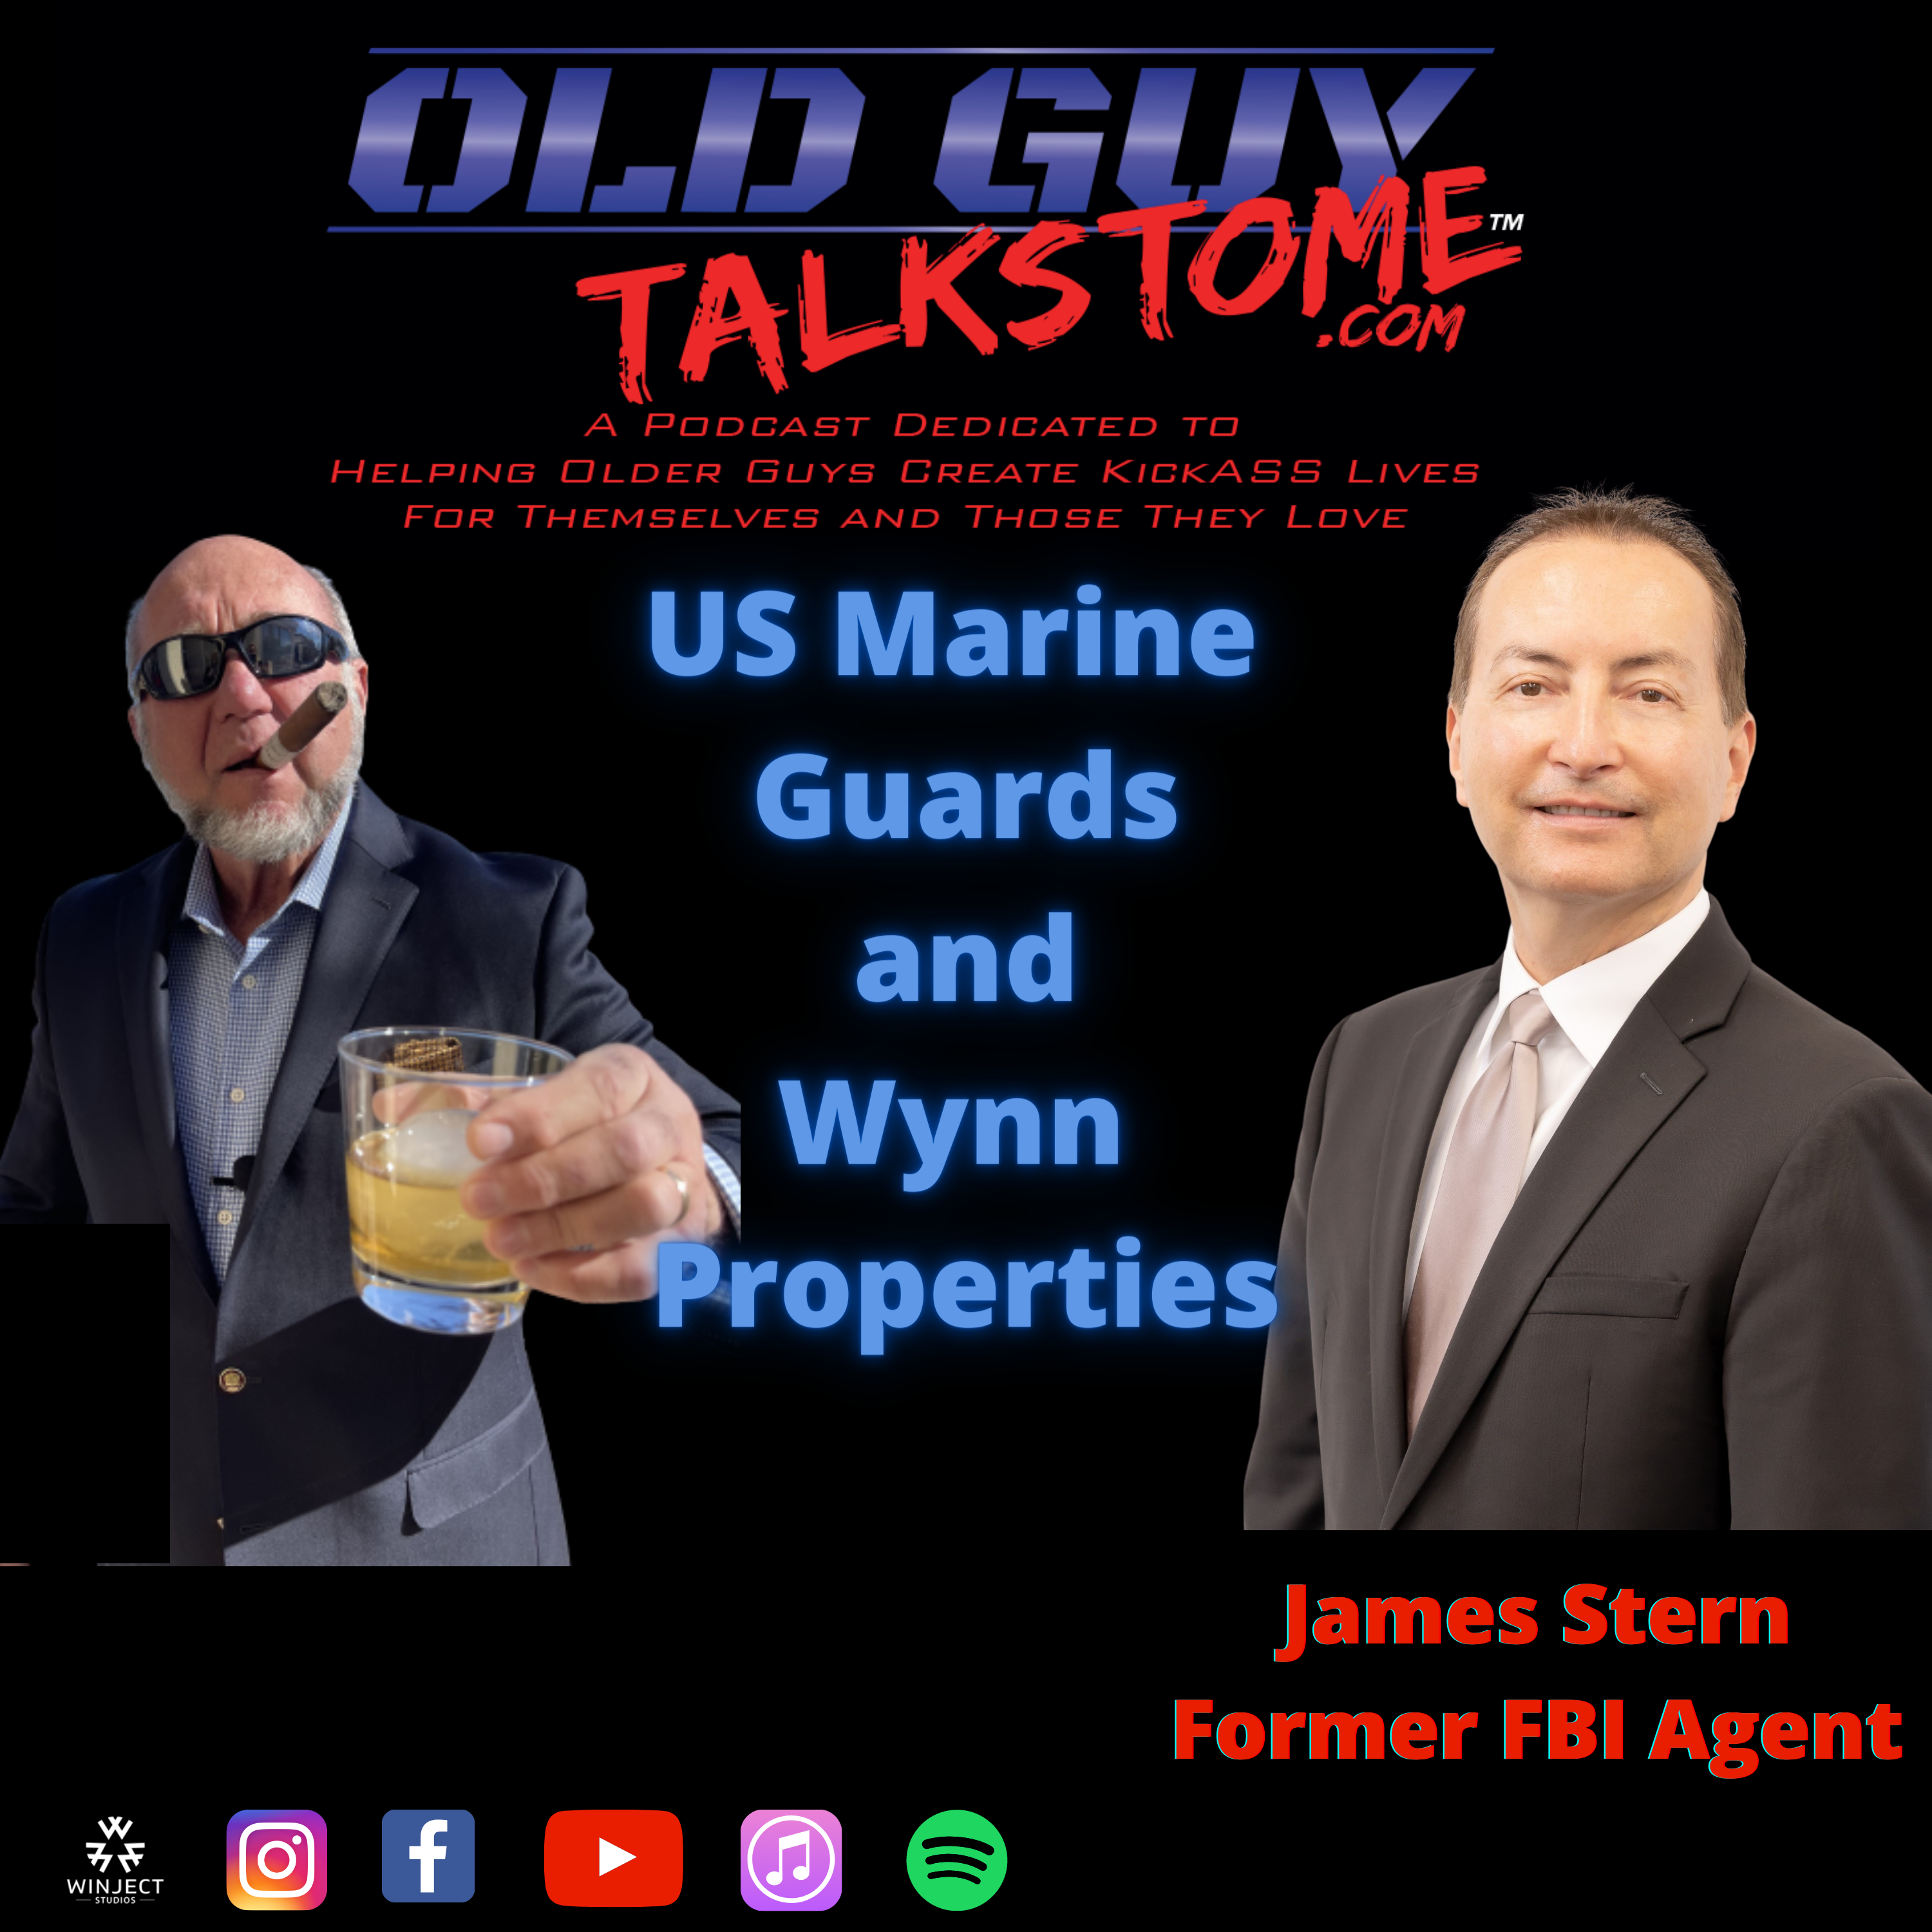 OldGuyTalksToMe - 83.  US Marine Guards and Wynn Properties